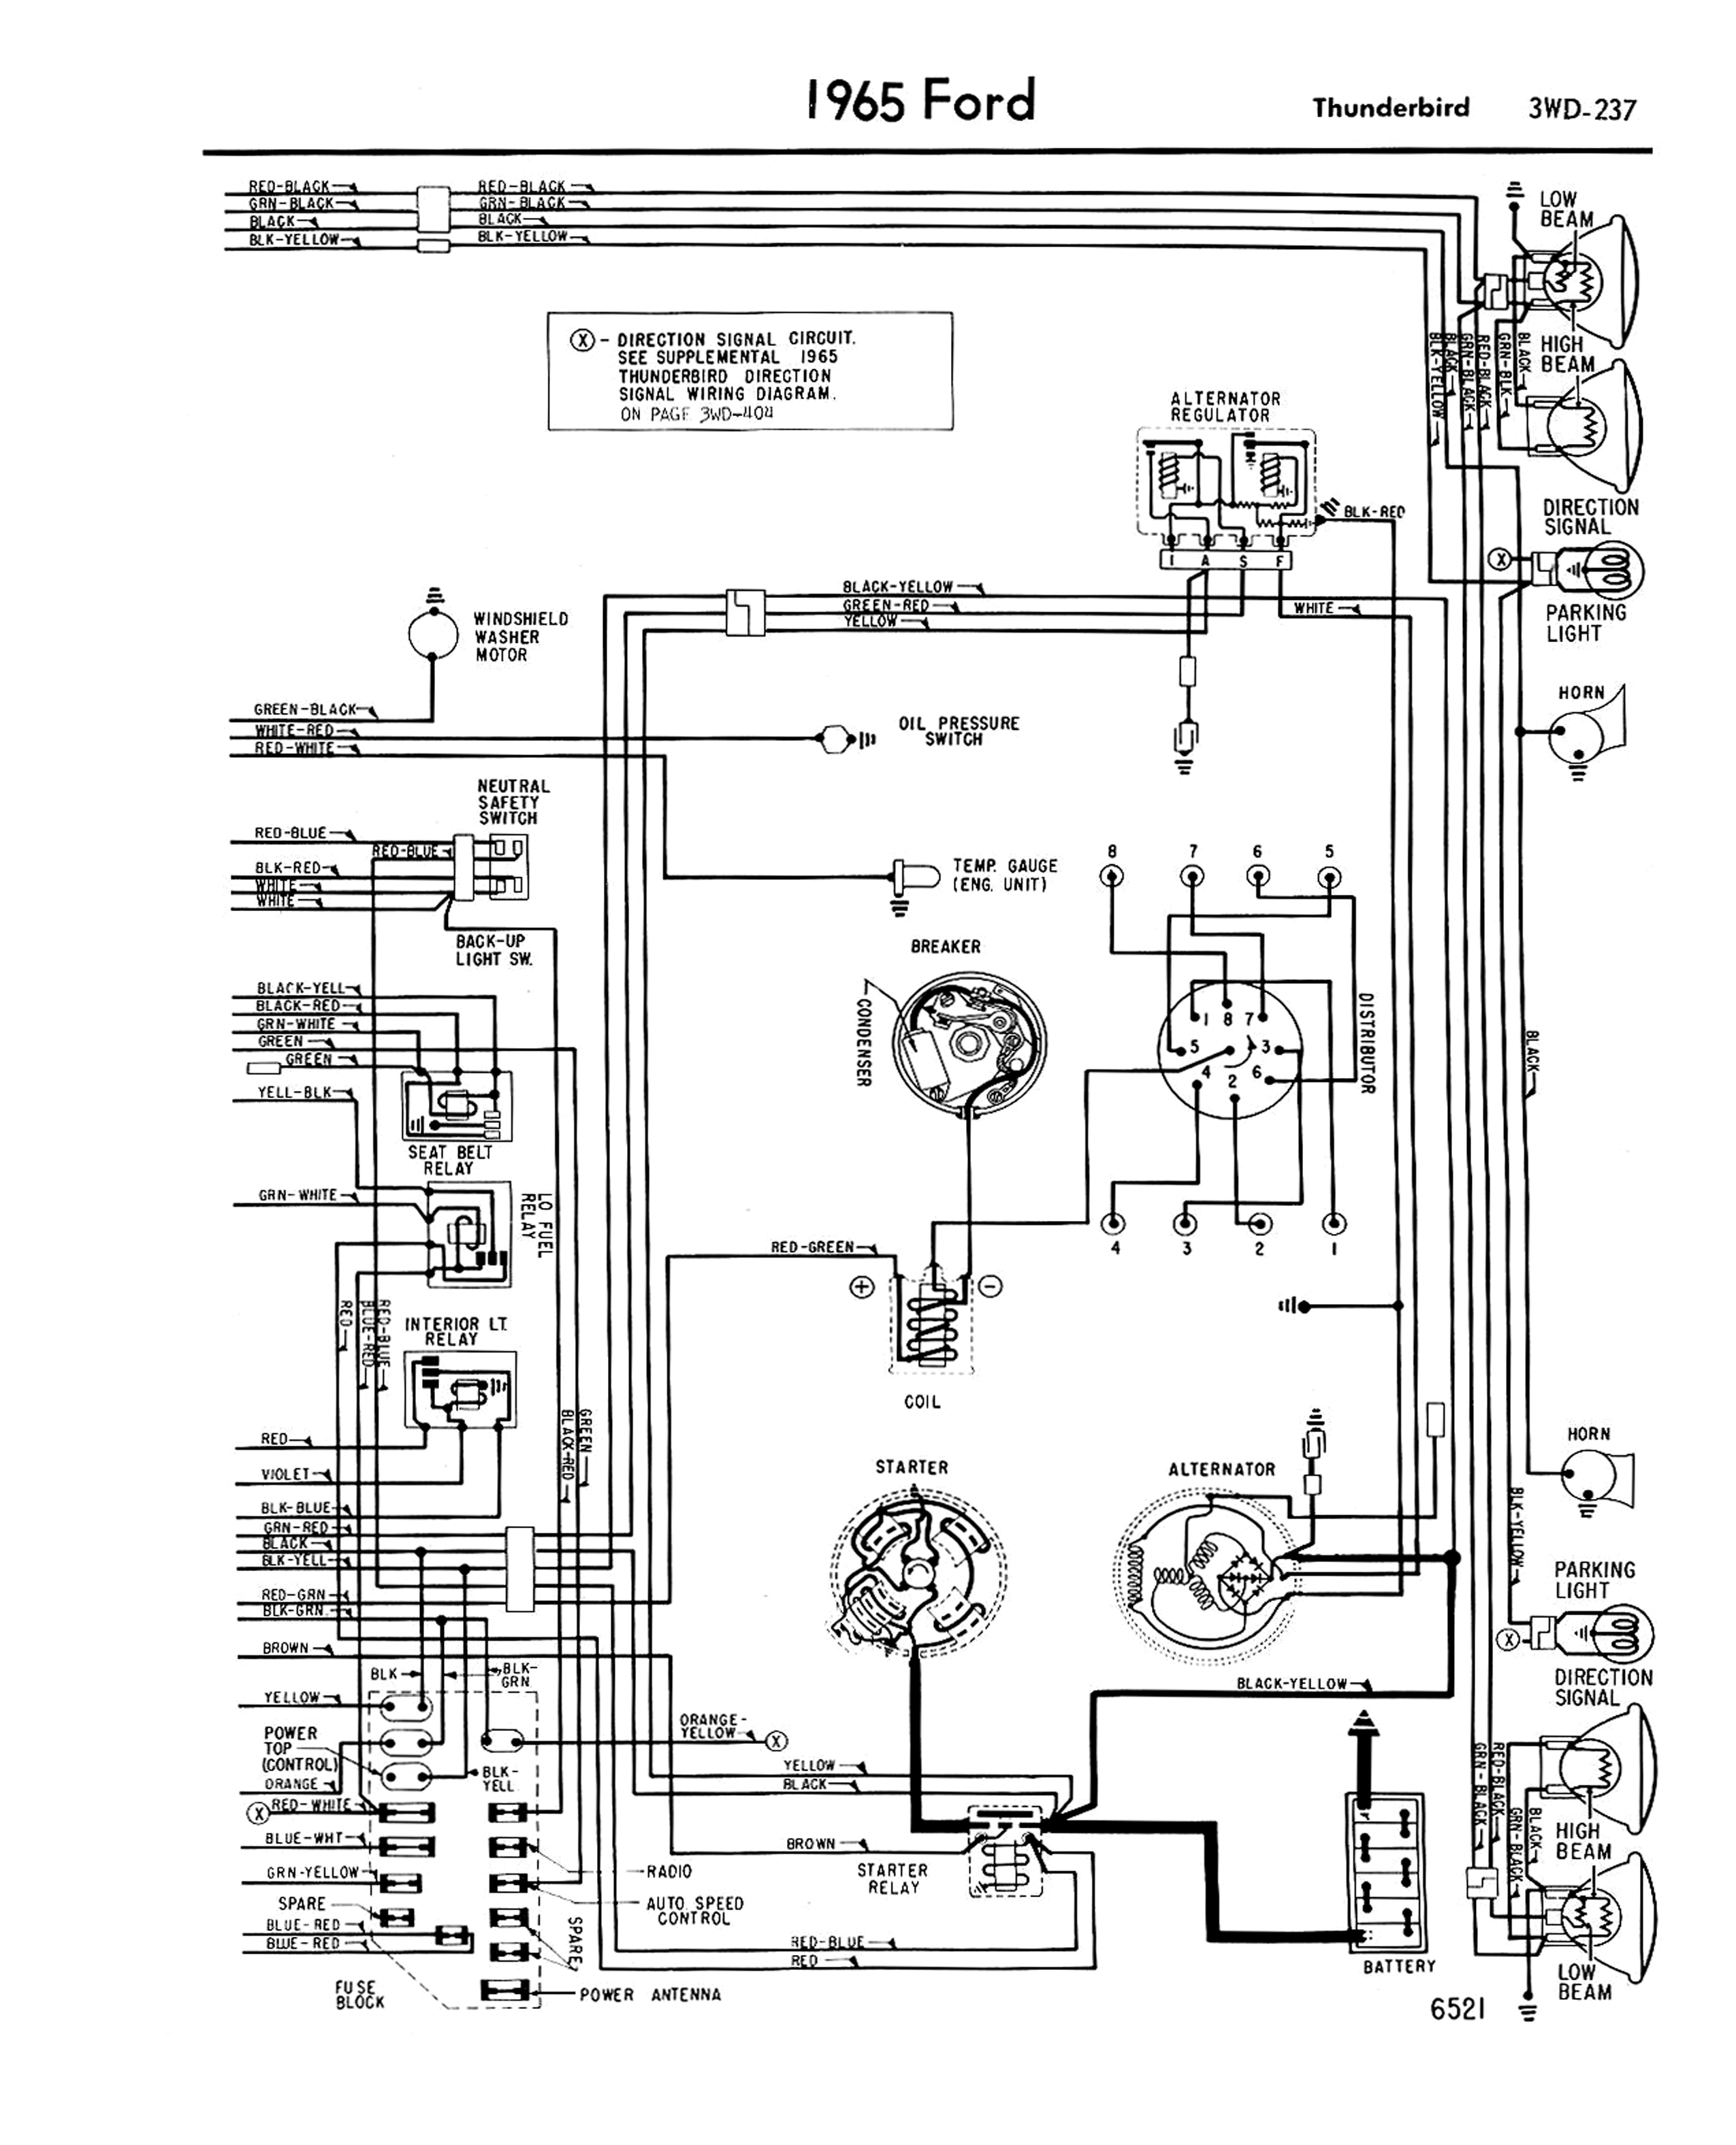 1968 Ford Turn Signal Wiring Diagram Simple 87 Mustang 1958 68 Electrical Schematics E 150 Signals Digram